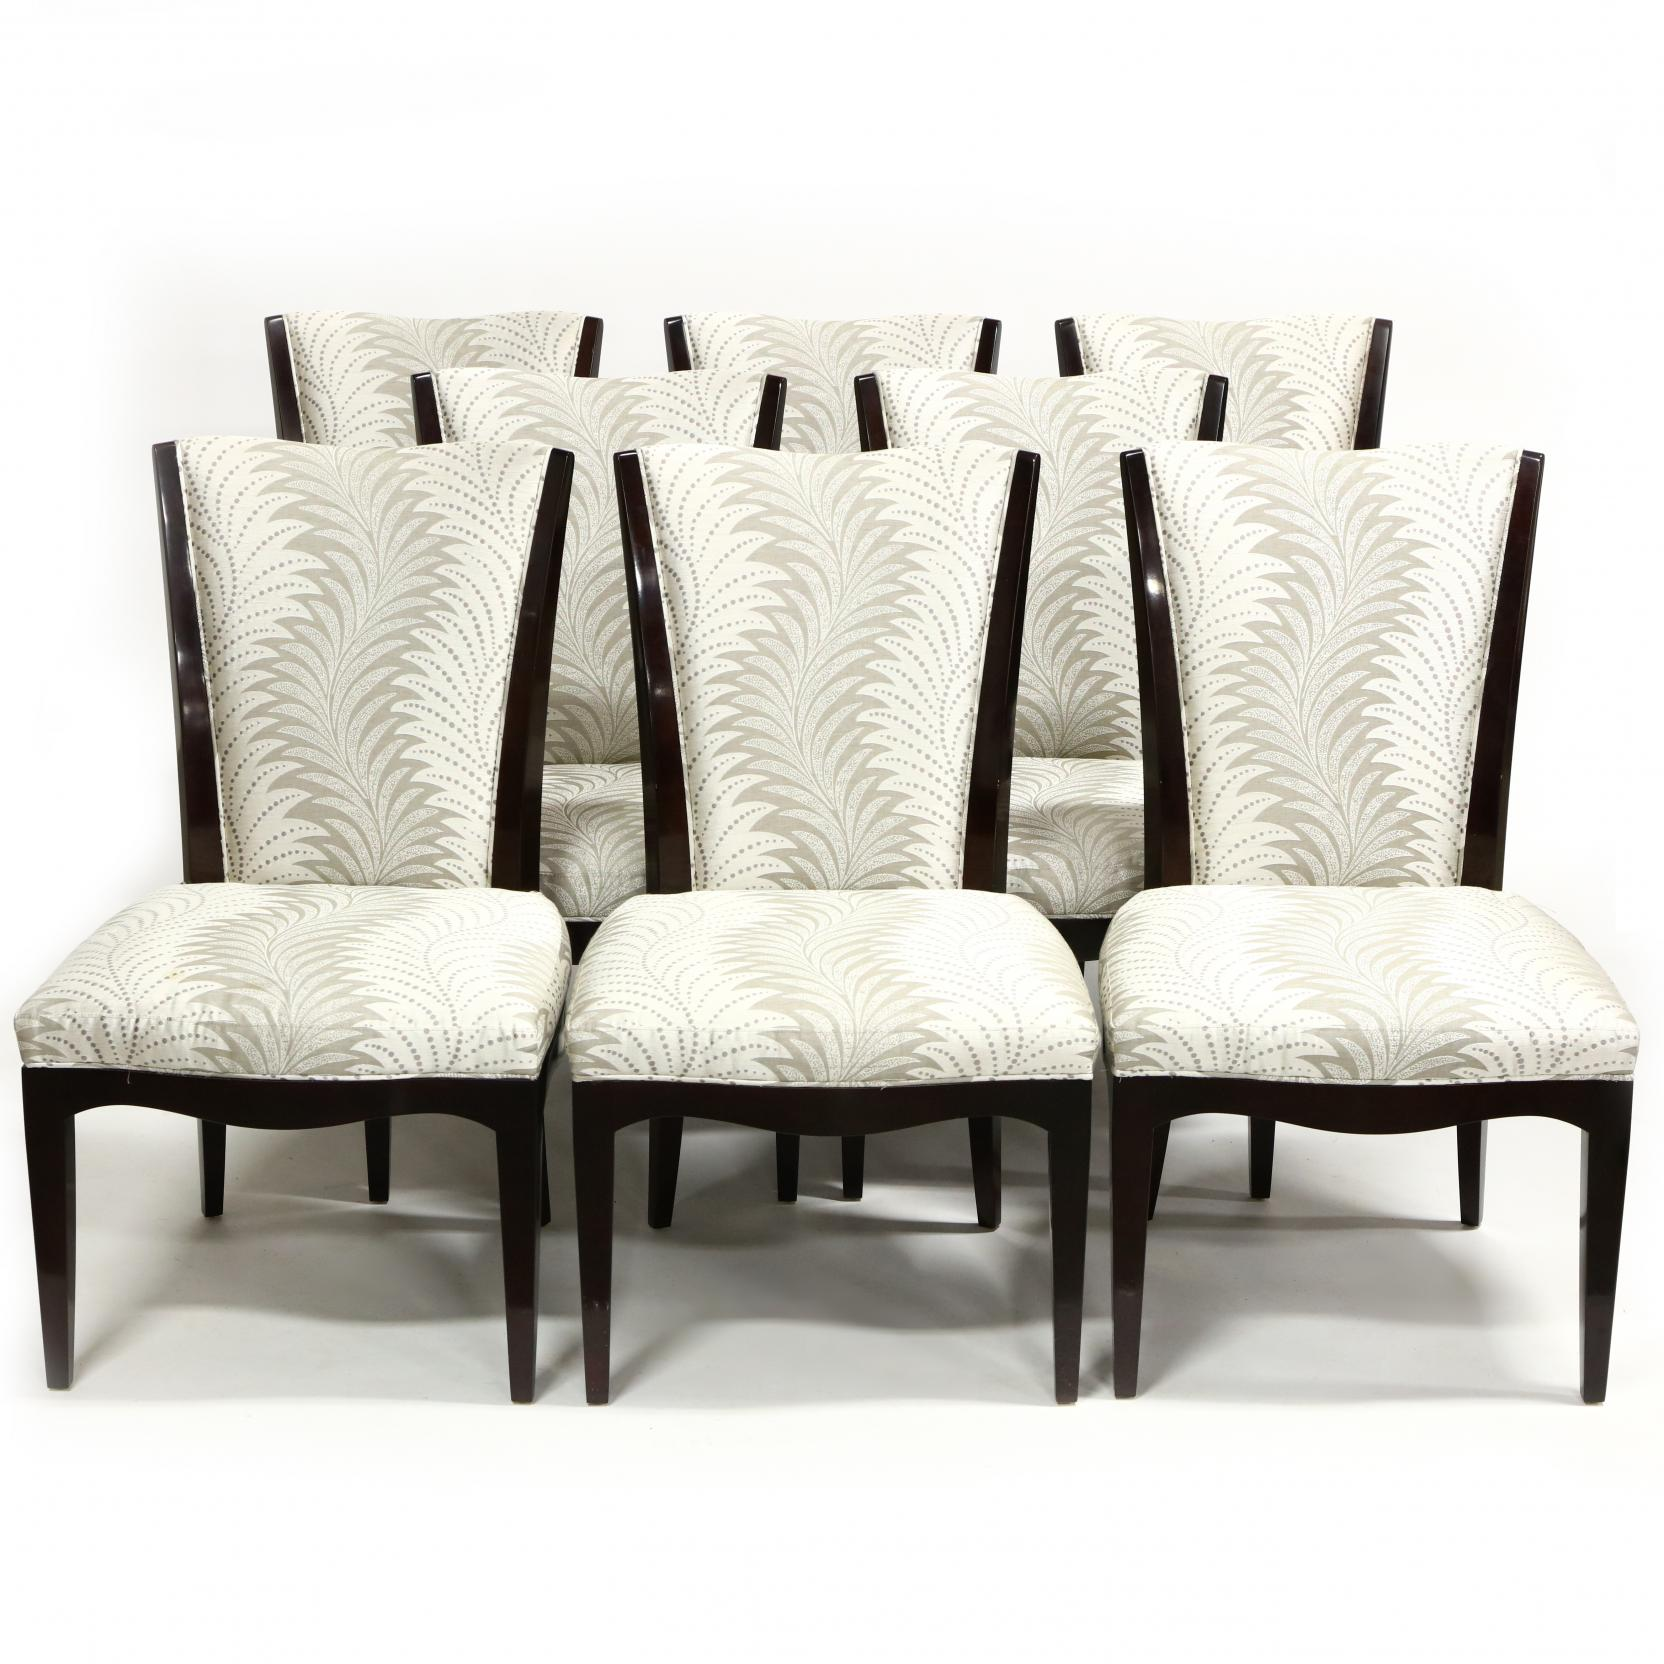 baker-set-of-eight-dining-chairs-by-barbara-barry